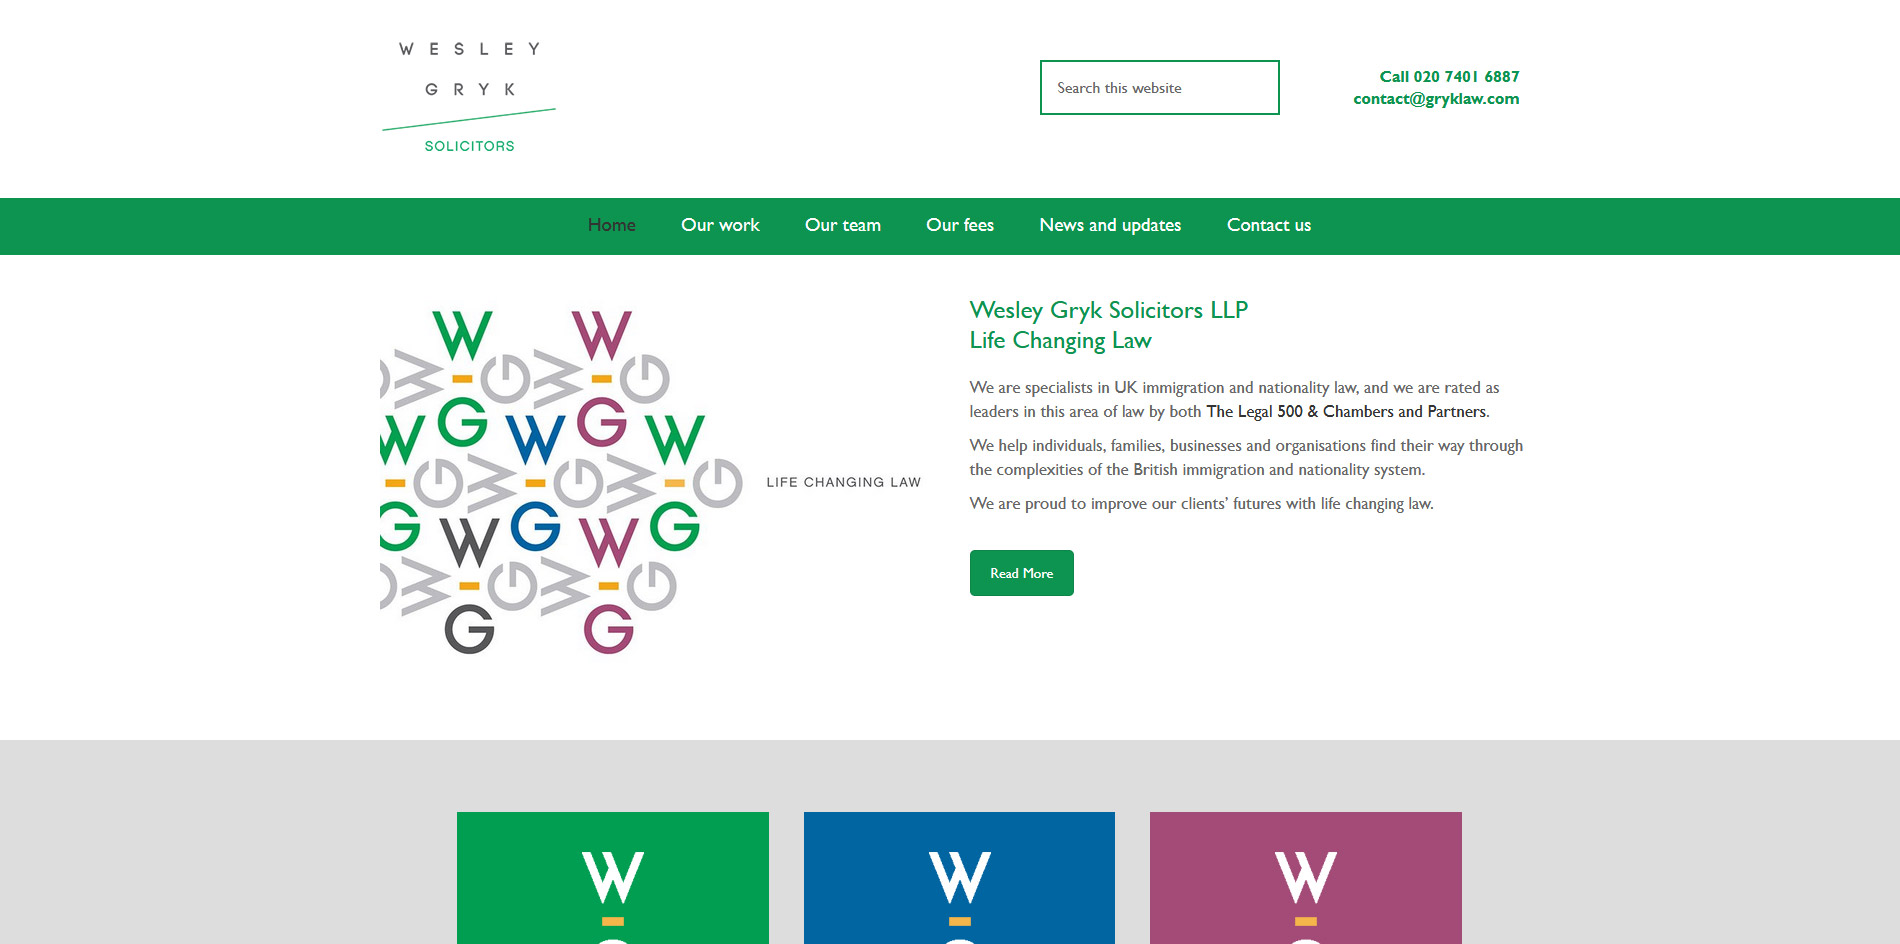 Wesley Gryk Solicitors Website